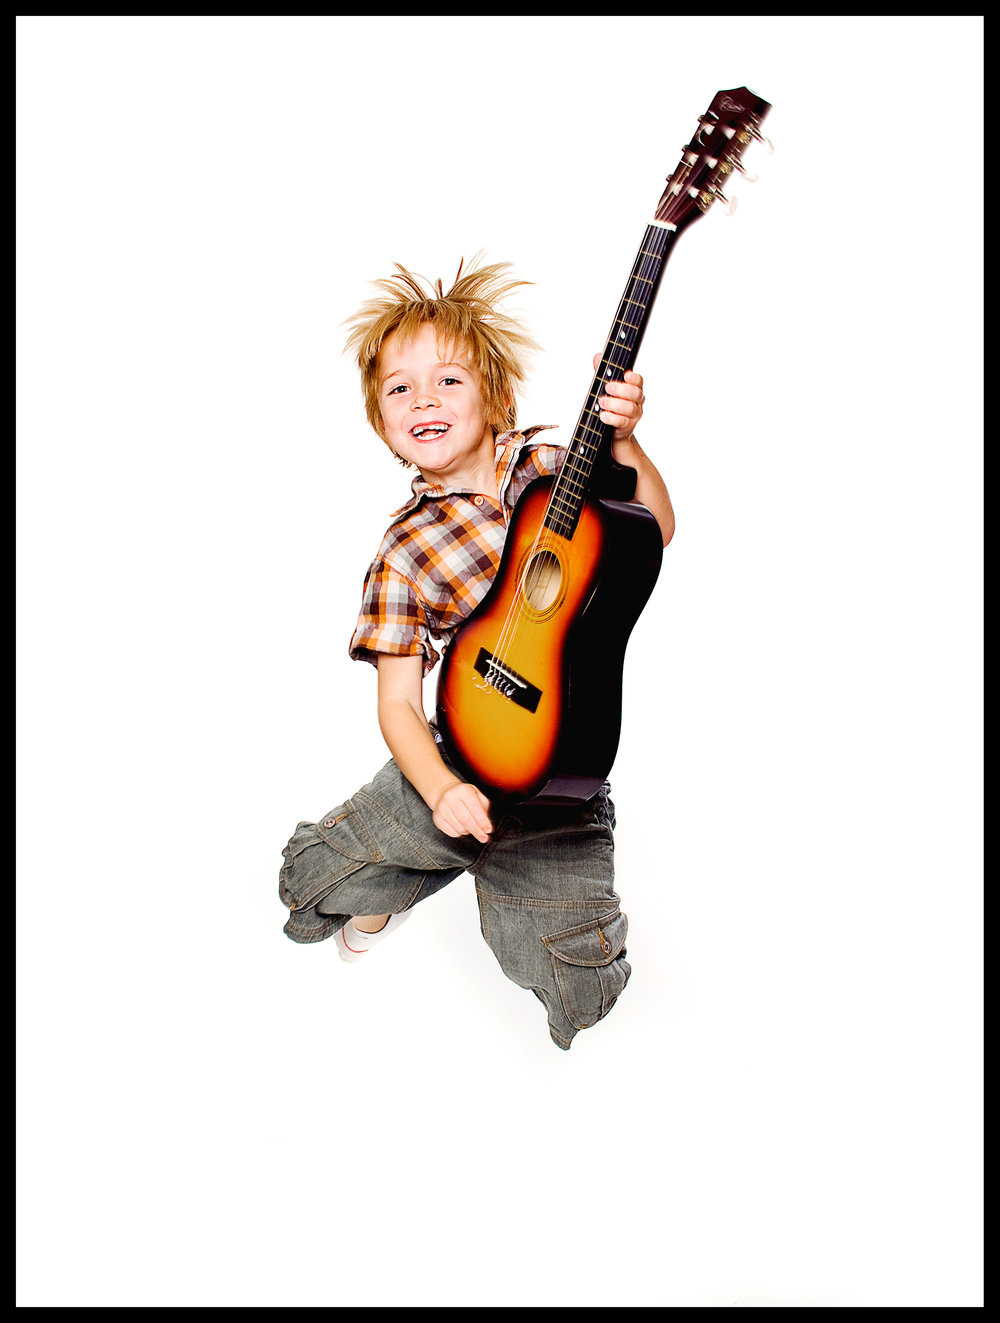 portrait of blonde boy with a guitar jumpin